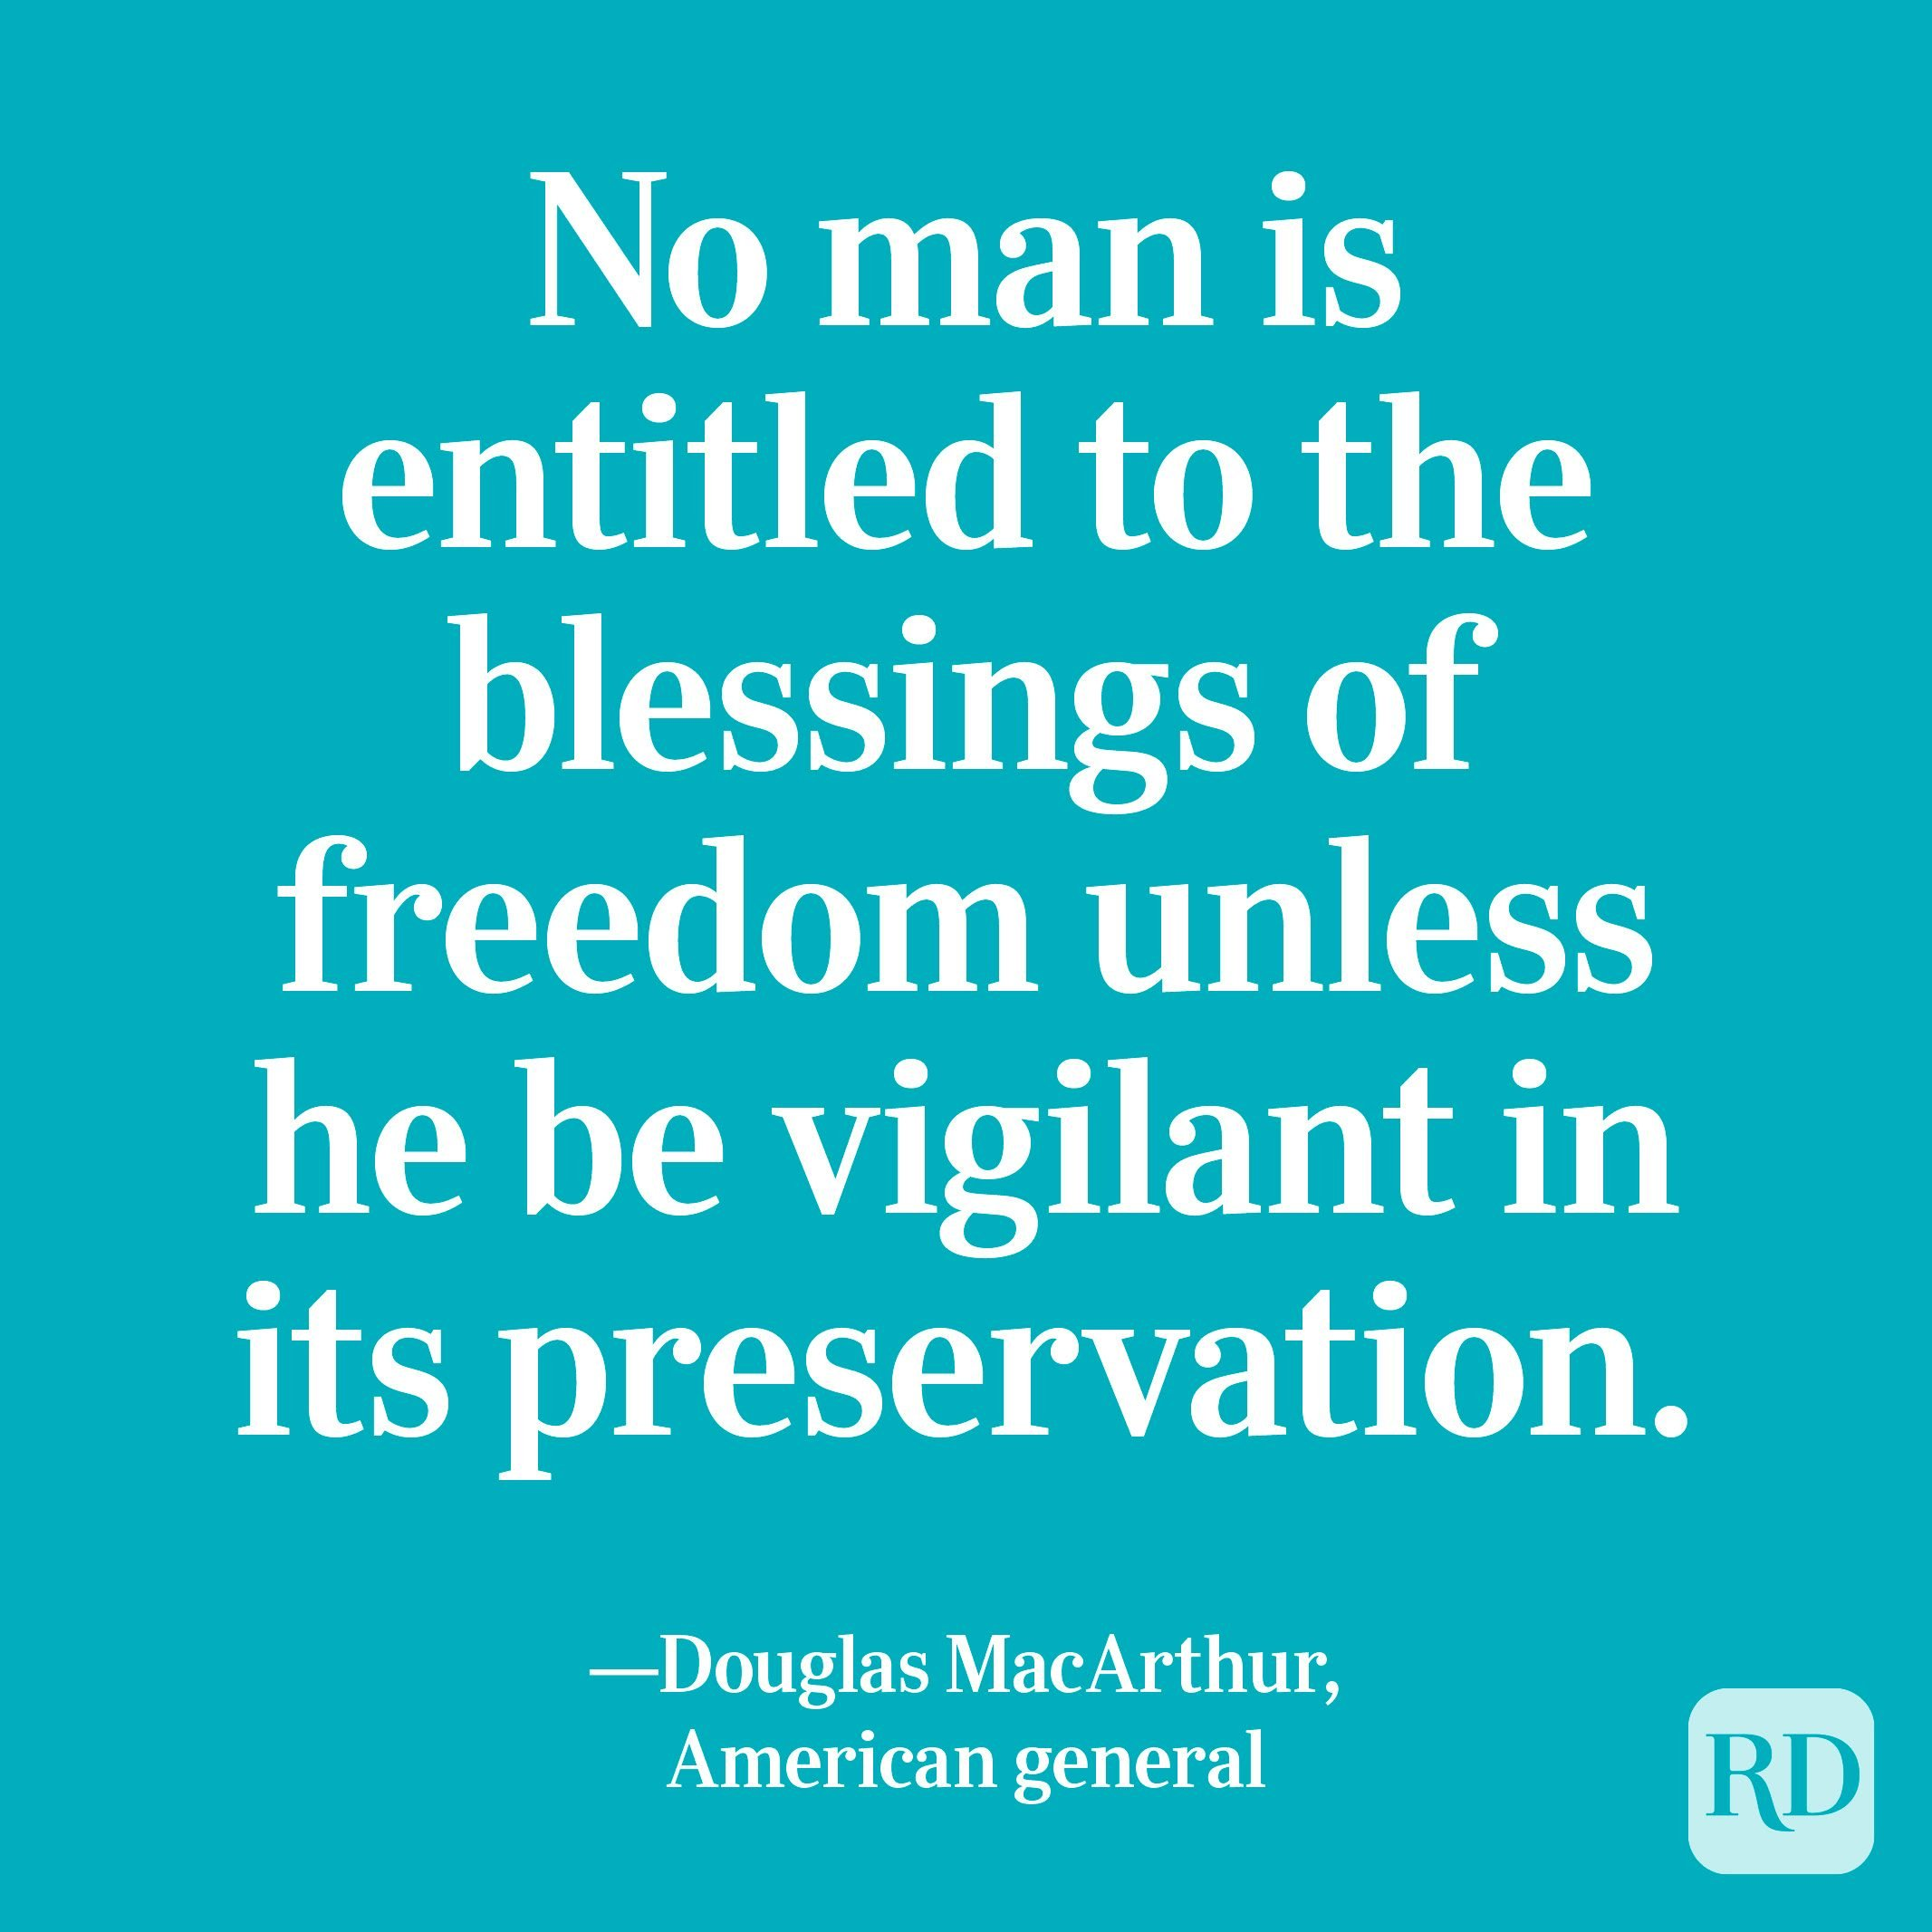 """""""No man is entitled to the blessings of freedom unless he be vigilant in its preservation."""" —Douglas MacArthur, American general"""